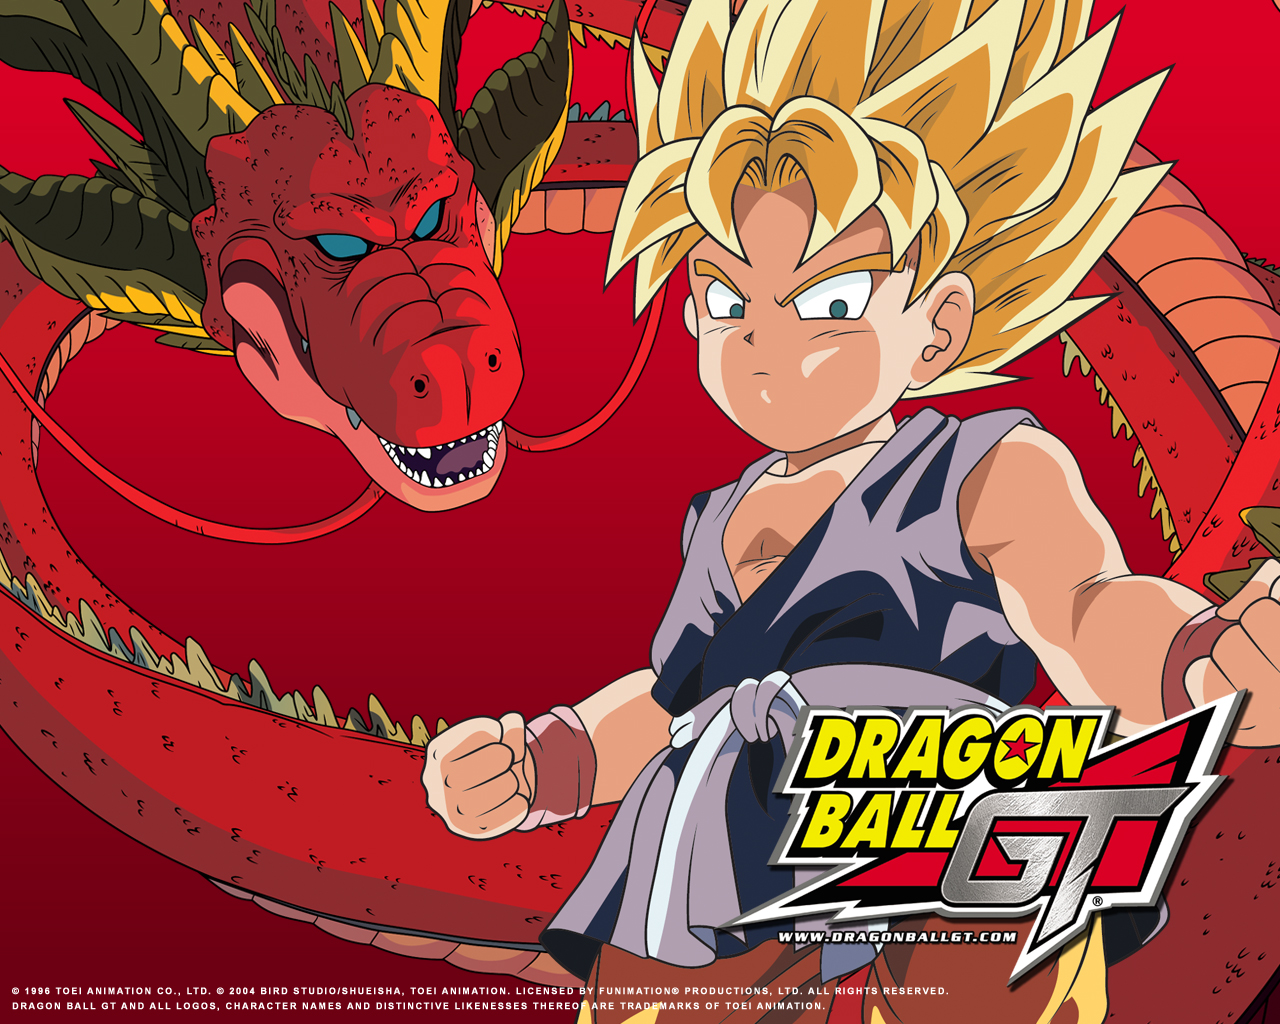 Dragon Ball Gt Wallpaper Hd Dragon Ball Gt 180373 Hd